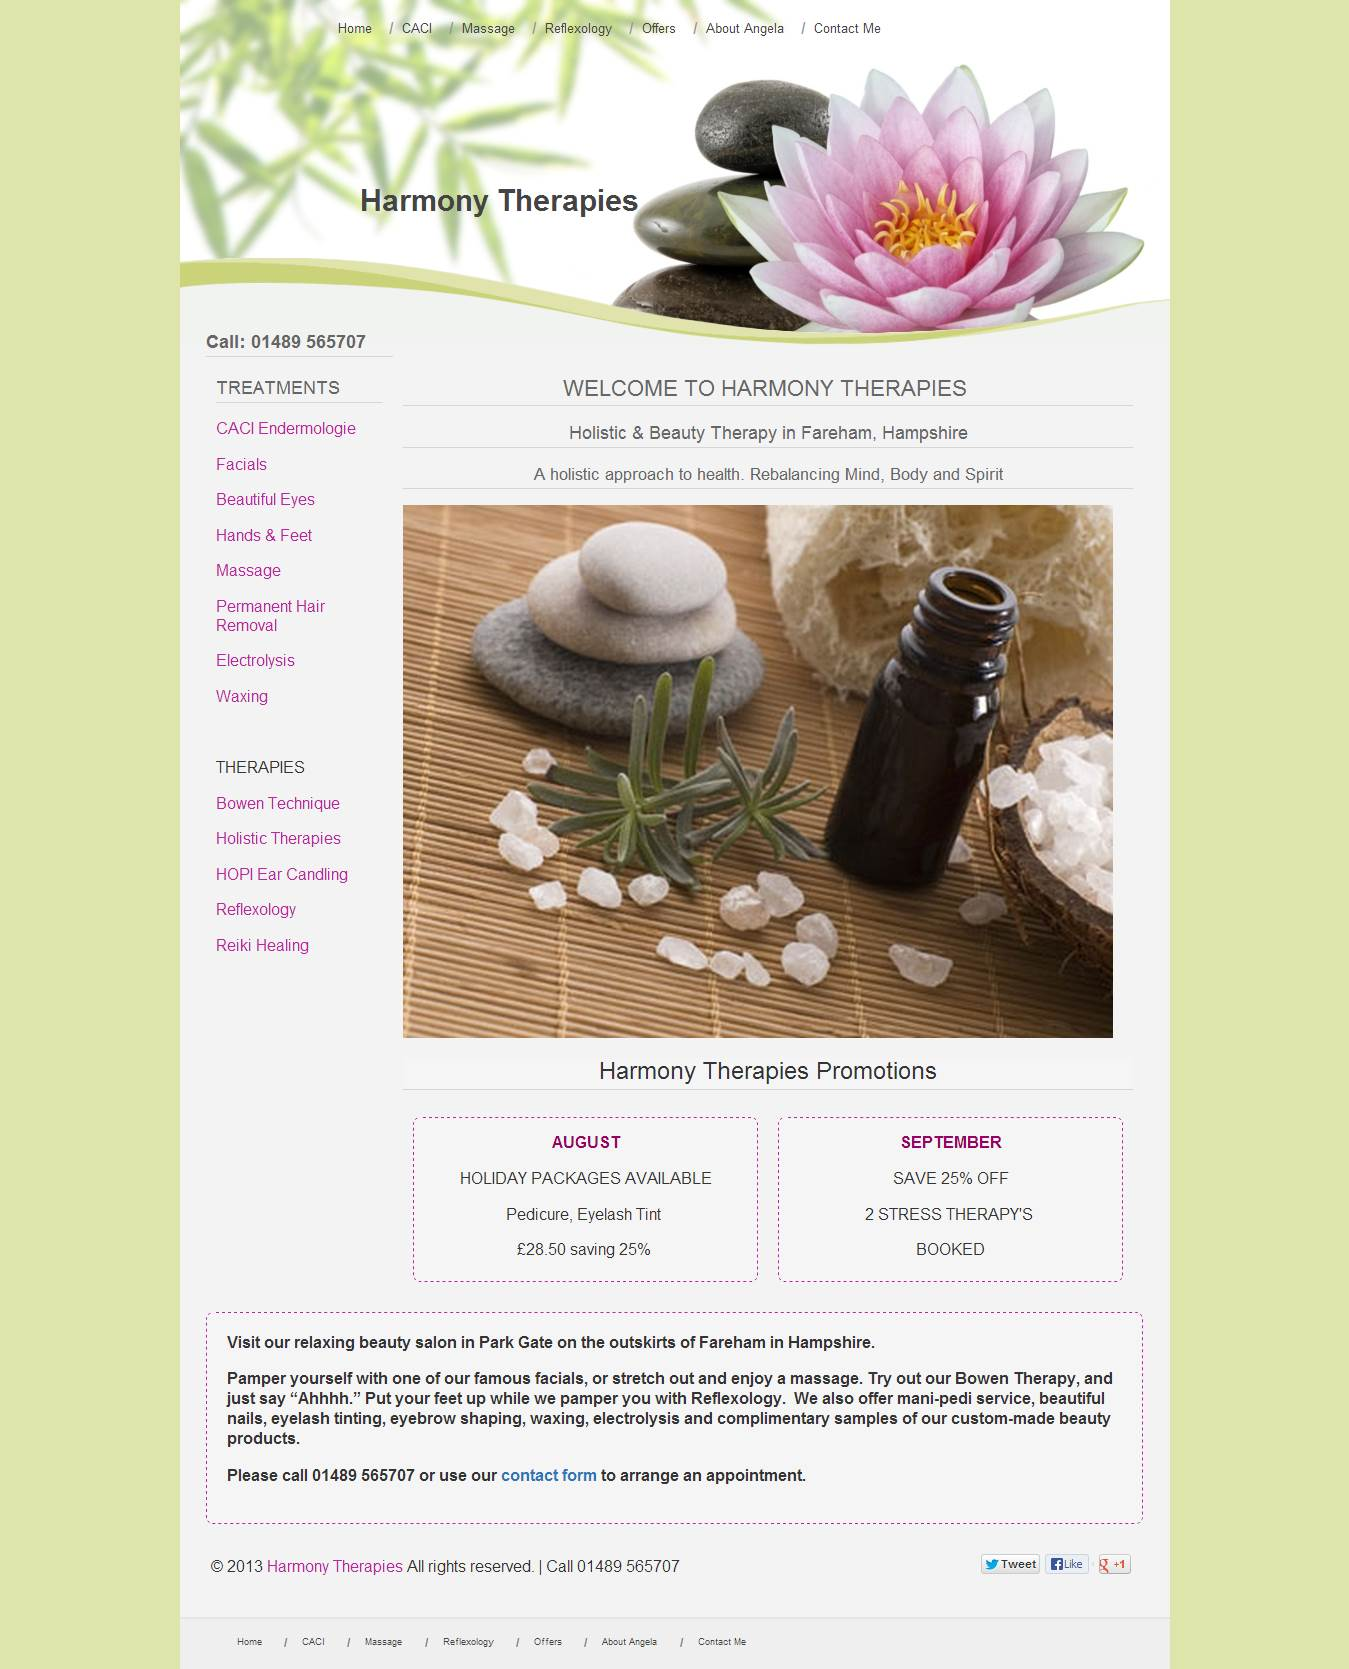 Harmony Therapies